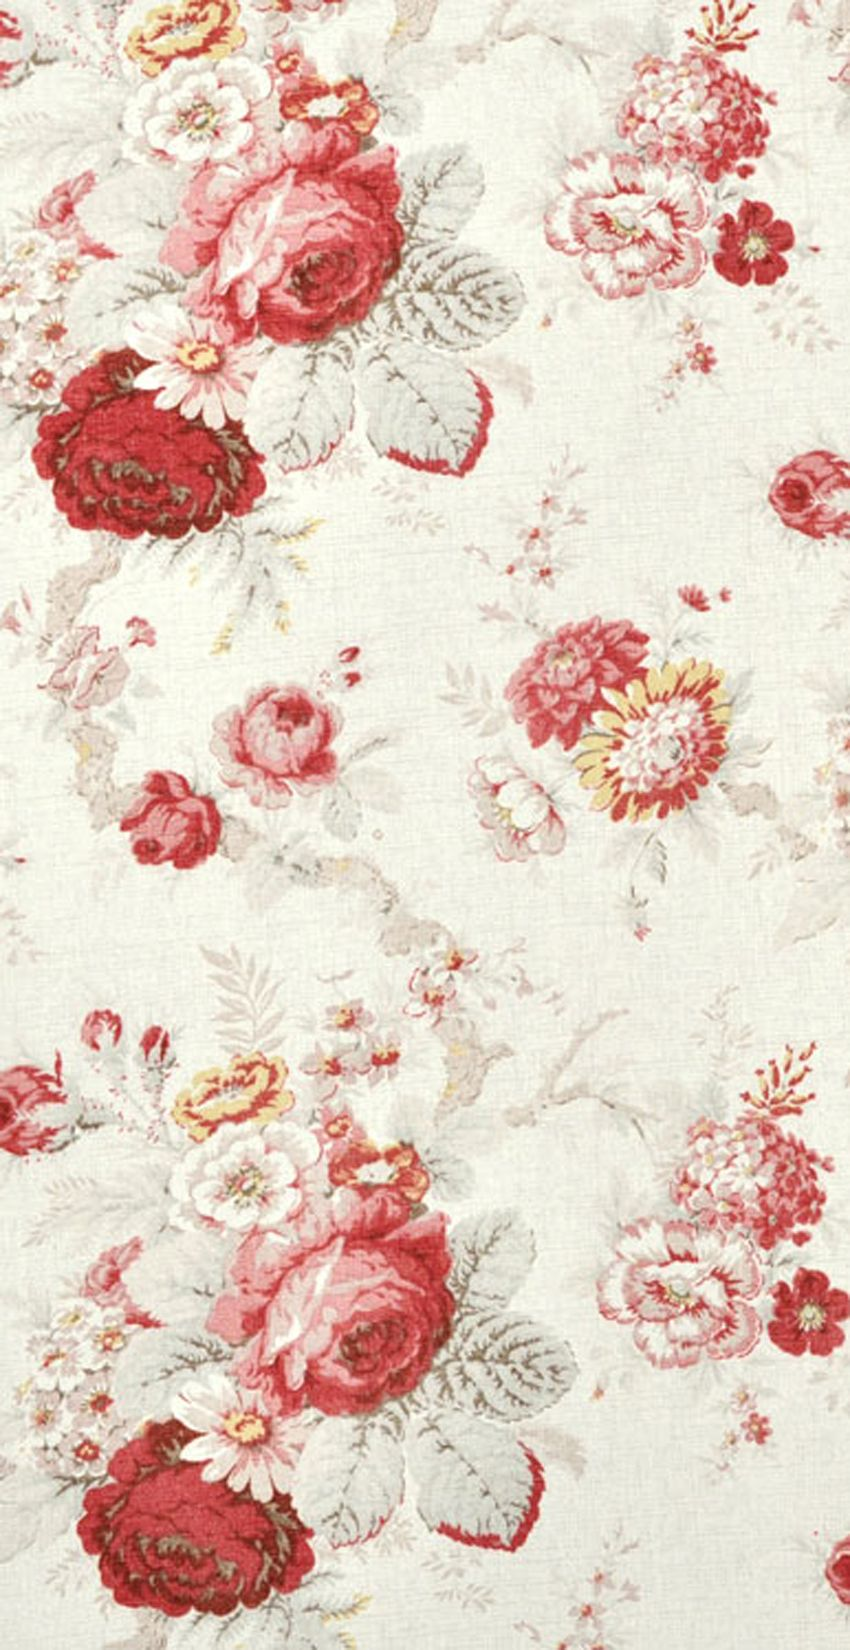 Waverly Norfolk Red Rose Home Decor Fabric 13 00 Per Yard Fabric Decor Waverly Fabric Home Decor Fabric